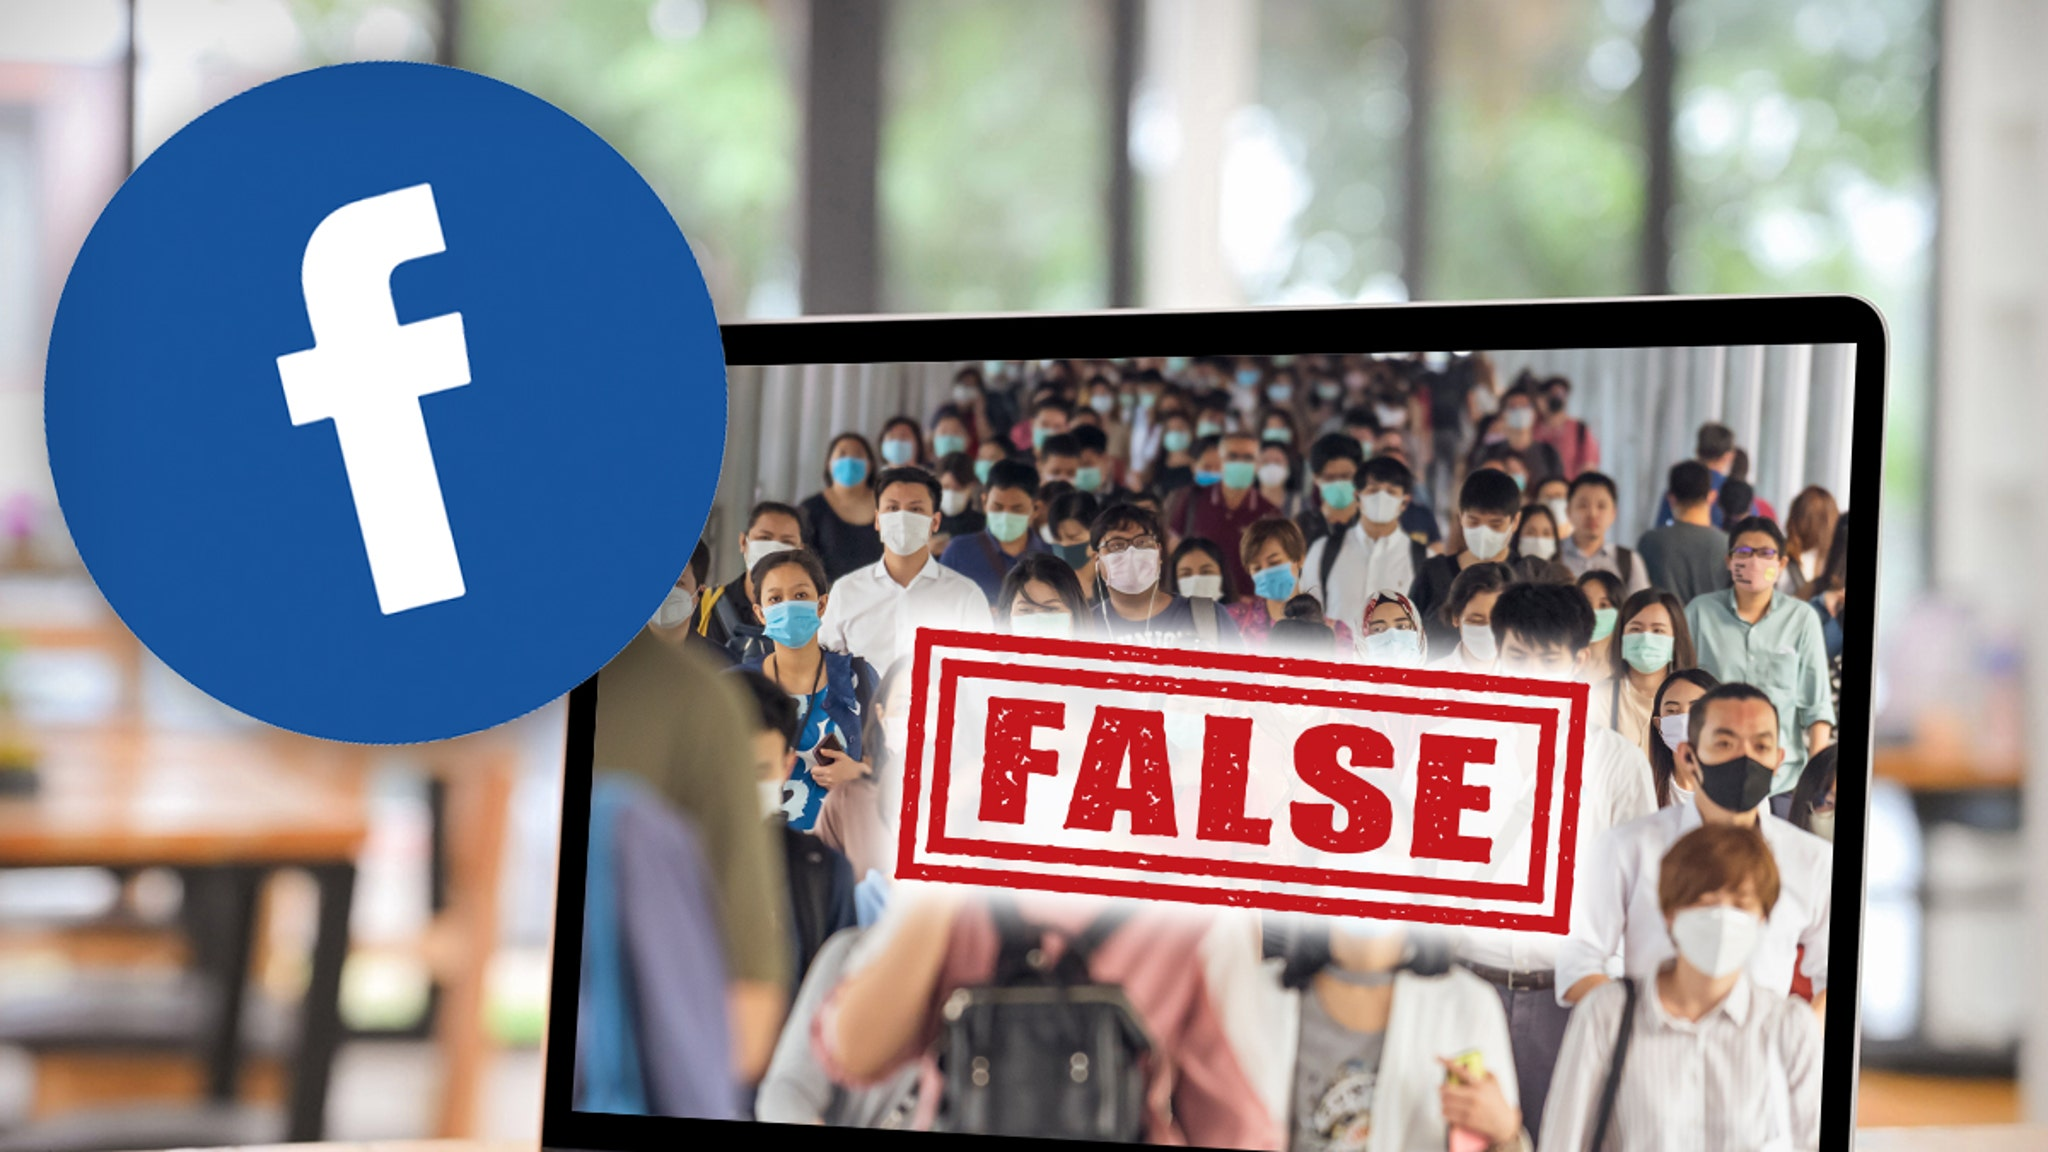 Two Oxford scientists have skewered Facebook, claiming the company is engaged in anti-democratic censorship by flagging their article on mask-wearing